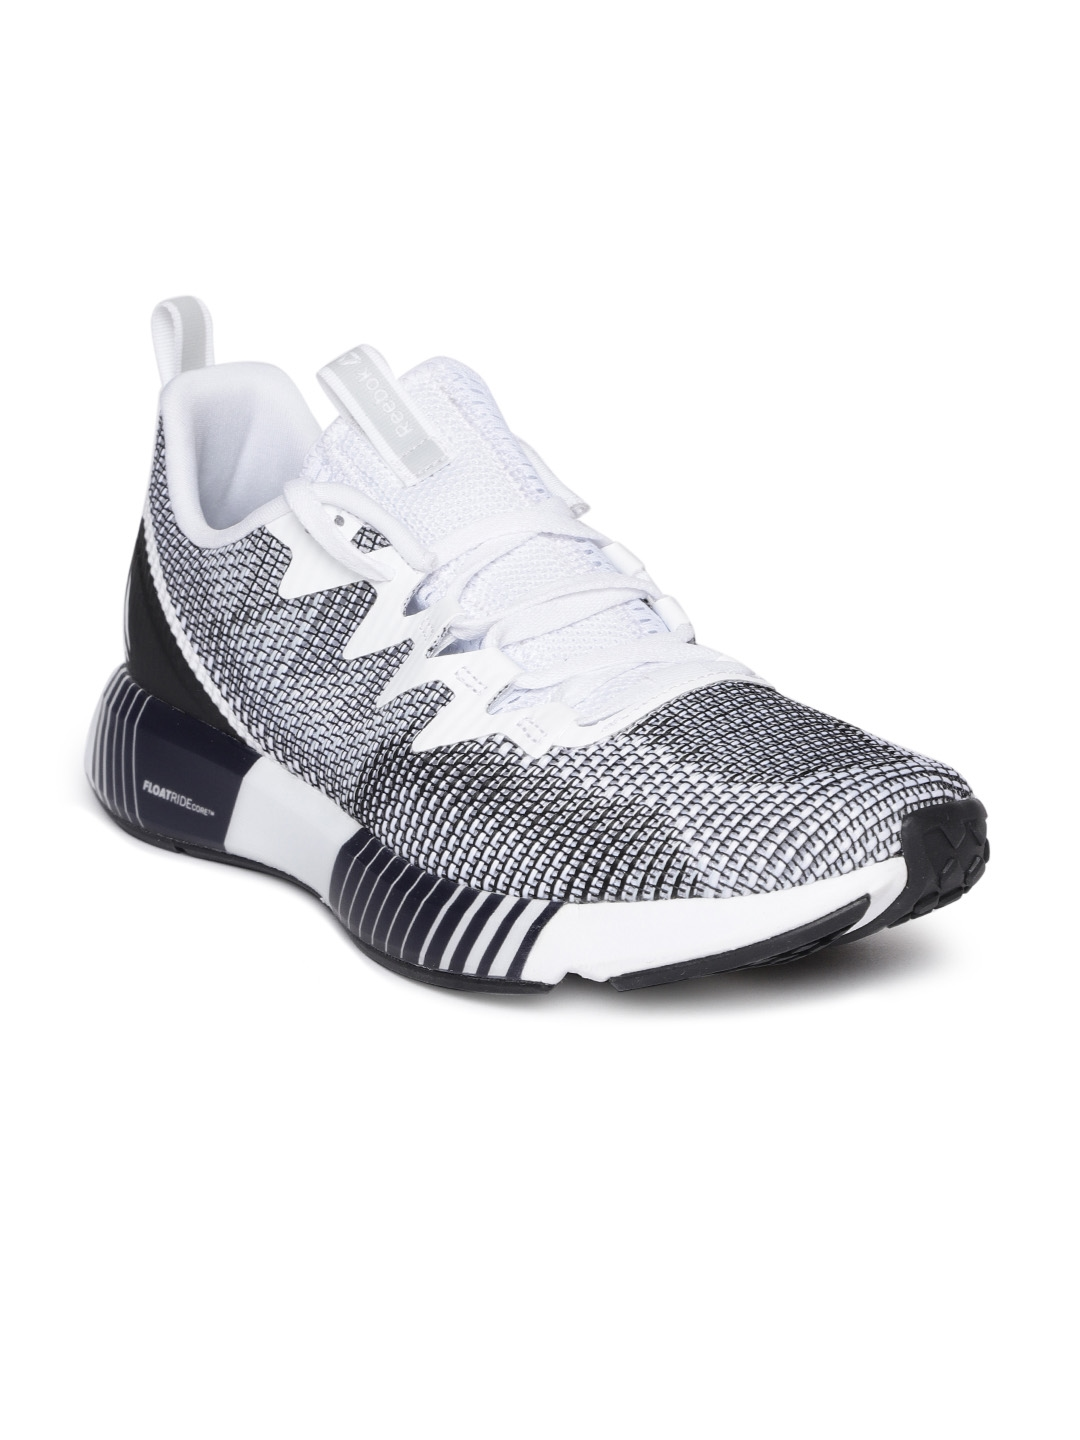 White Fusion Flexweave Running Shoes